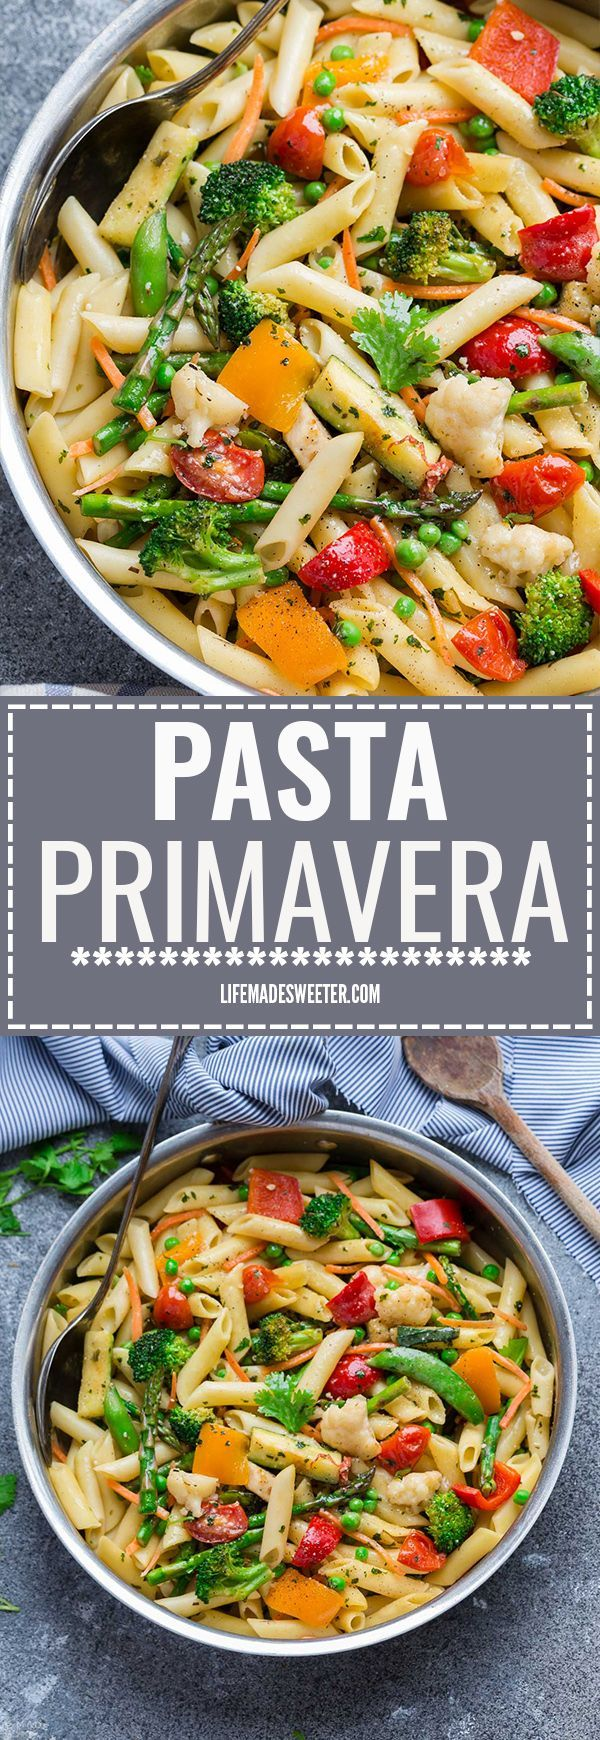 This Spring Pasta Primavera recipe comes together in under 30 minutes so it's perfect for busy weeknights. Best of all, you can serve it with or without chicken and it's chock full of fresh lemon, asparagus, snap peas, carrots and cherry tomatoes. Great for Sunday meal prep and leftovers are delicious for work or school lunchboxes or lunch bowls.